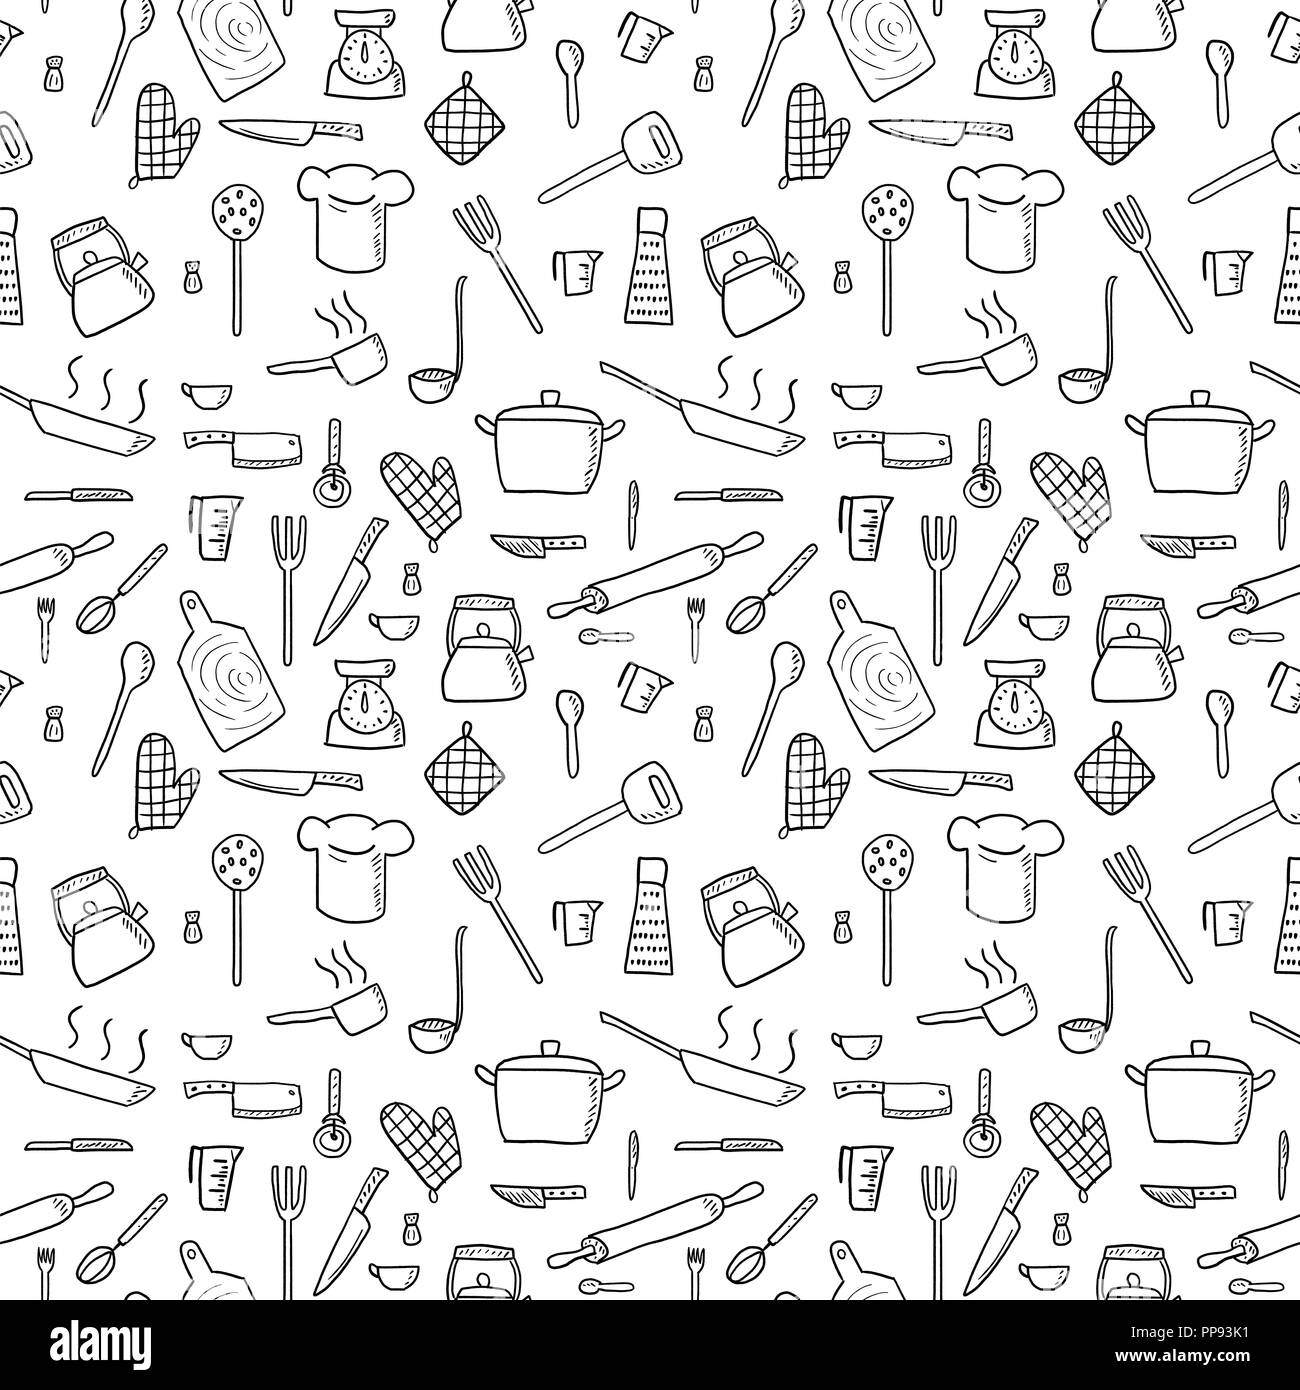 Cooking utensils and kitchen tools seamless background doodle vector